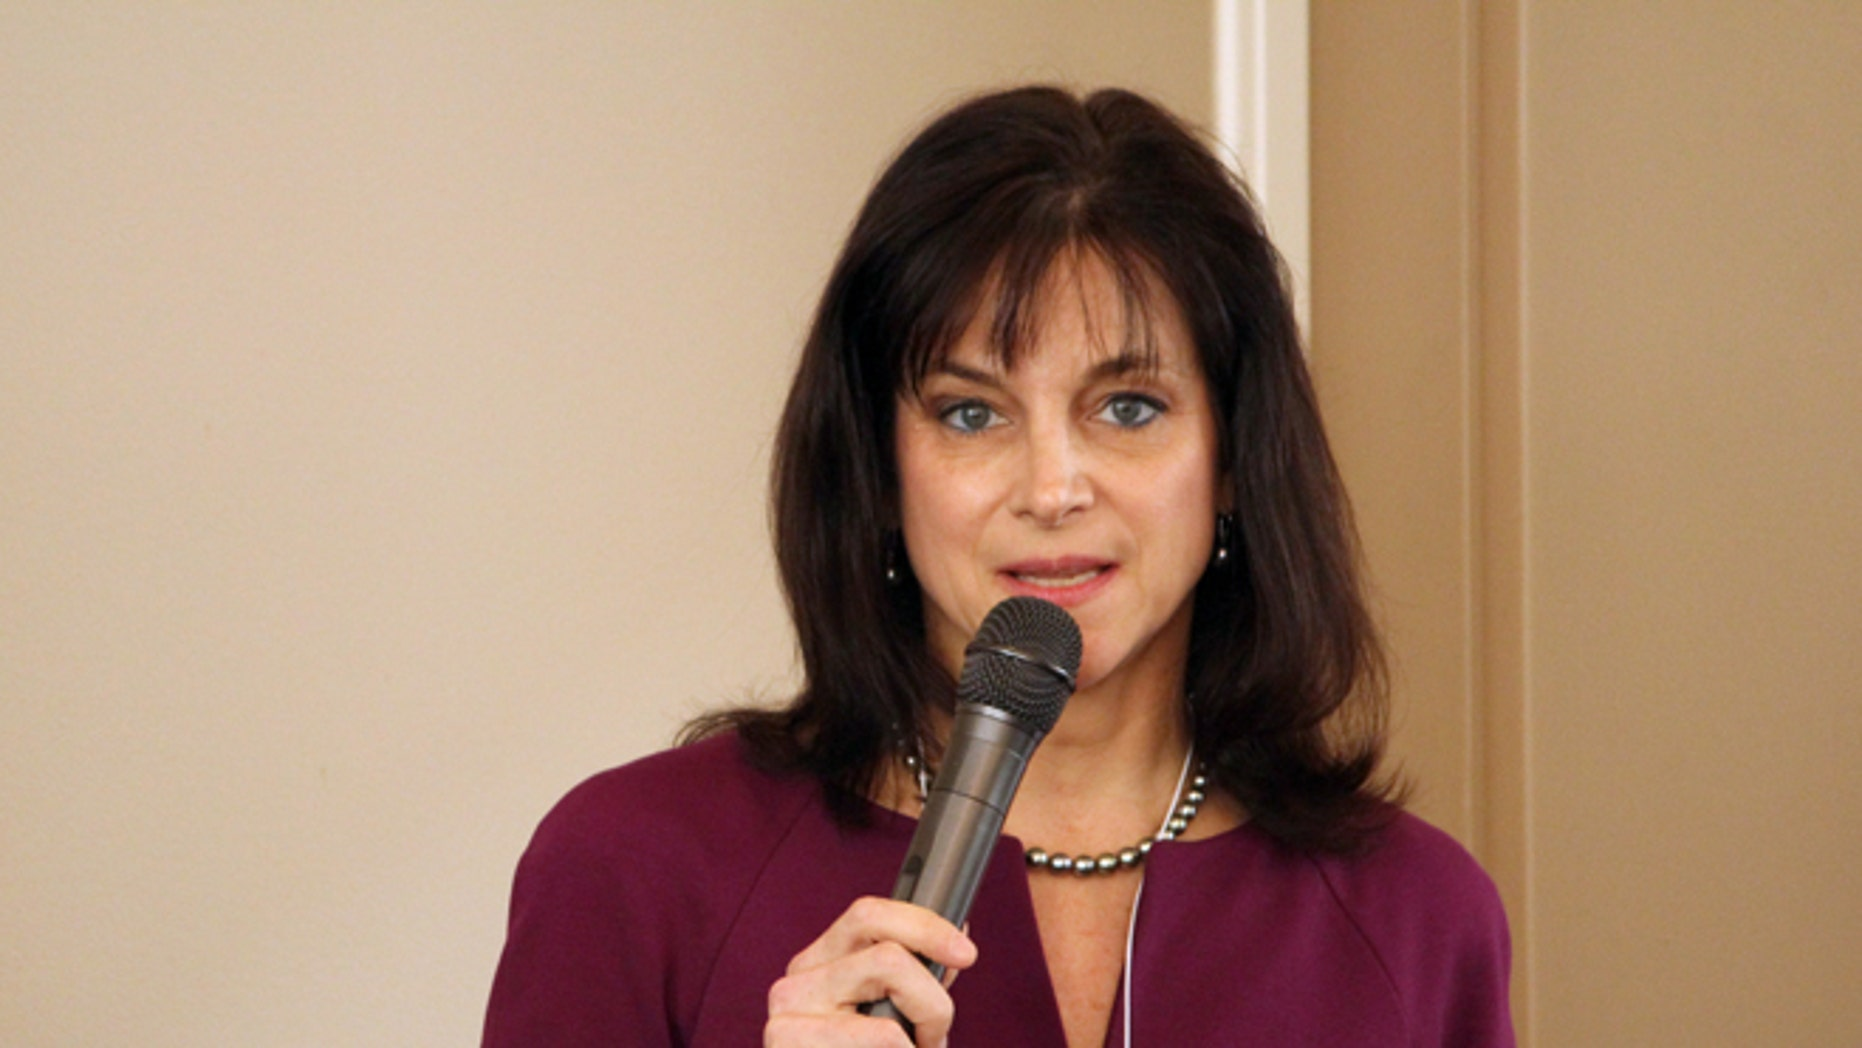 FILE: March 19, 2014: Oregon Republican Senate candidate Monica Wehby at a candidate forum in Lake Oswego, Ore.